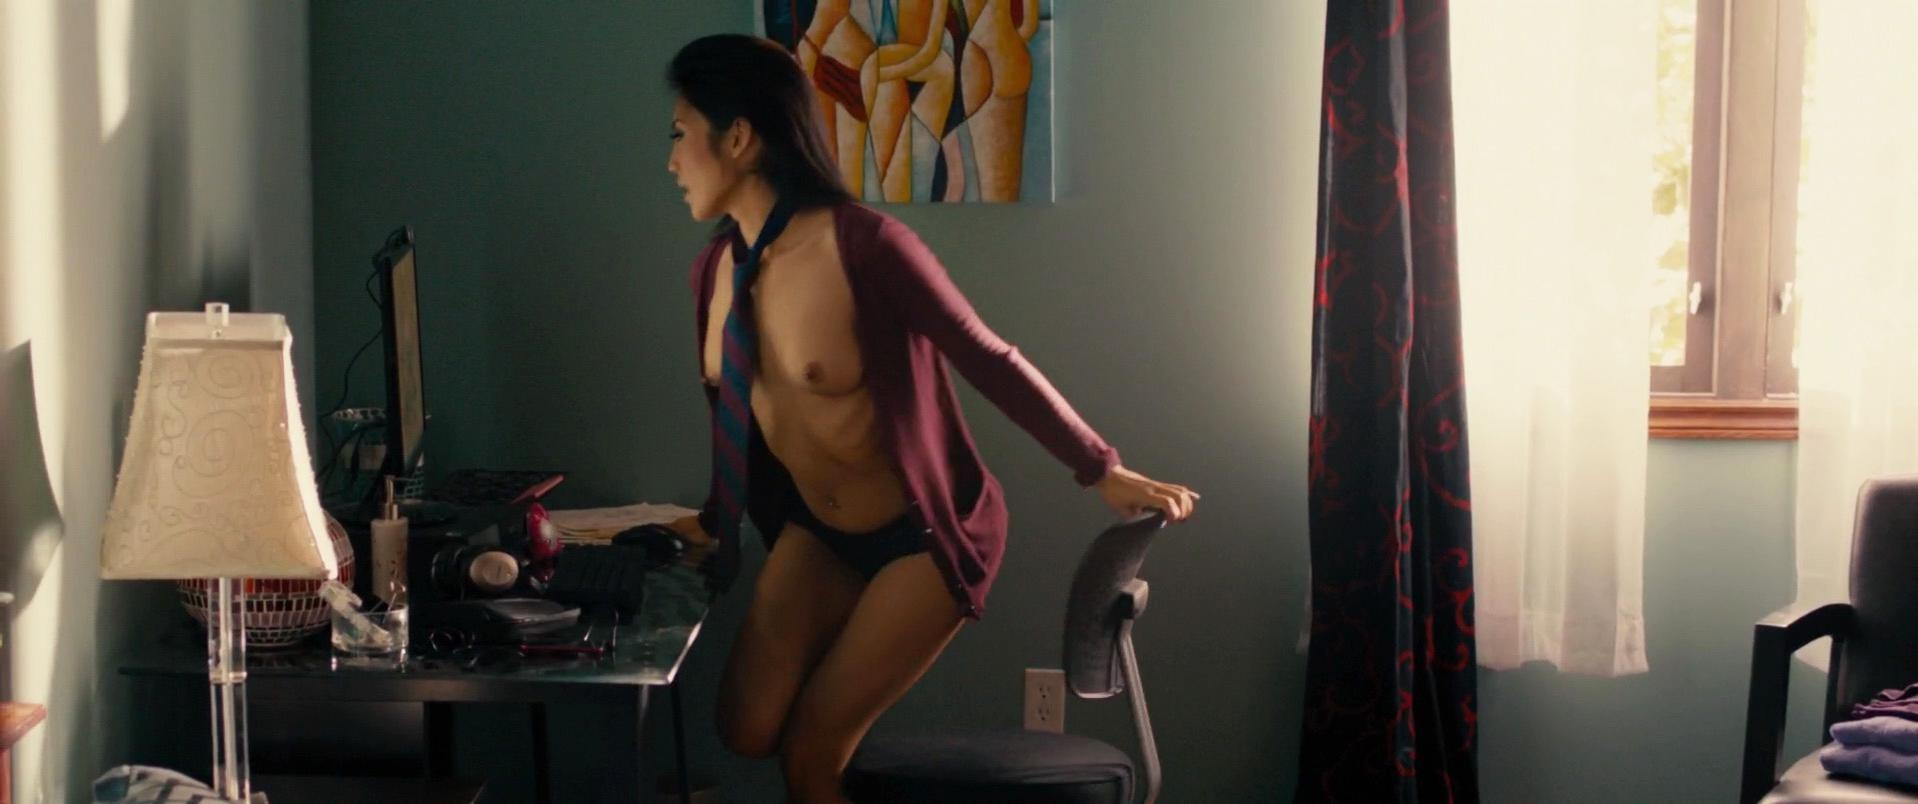 Chasty Ballesteros nude - Girlhouse (2014)